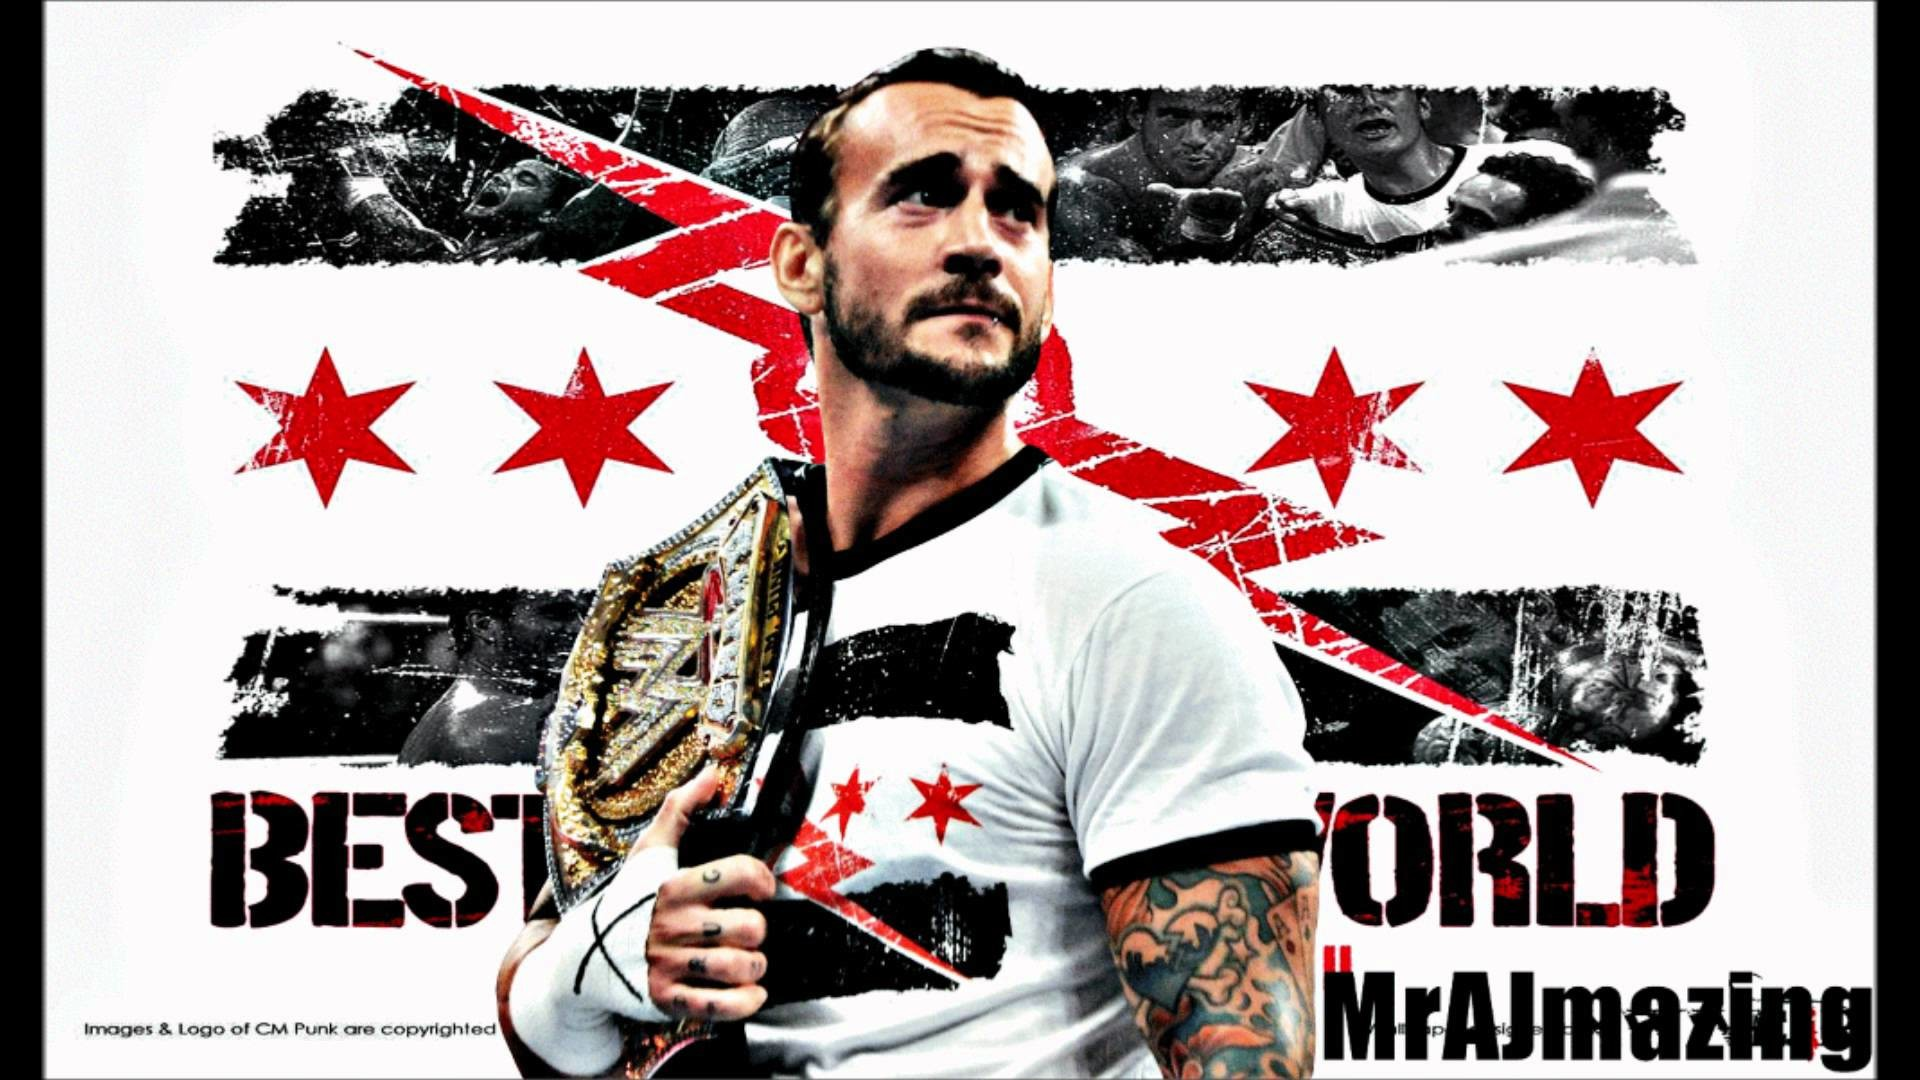 Cm punk logo wallpaper 63 images 1920x1080 cm punk wrestling full hd wallpapers pinterest cm punk and wwe champions voltagebd Choice Image